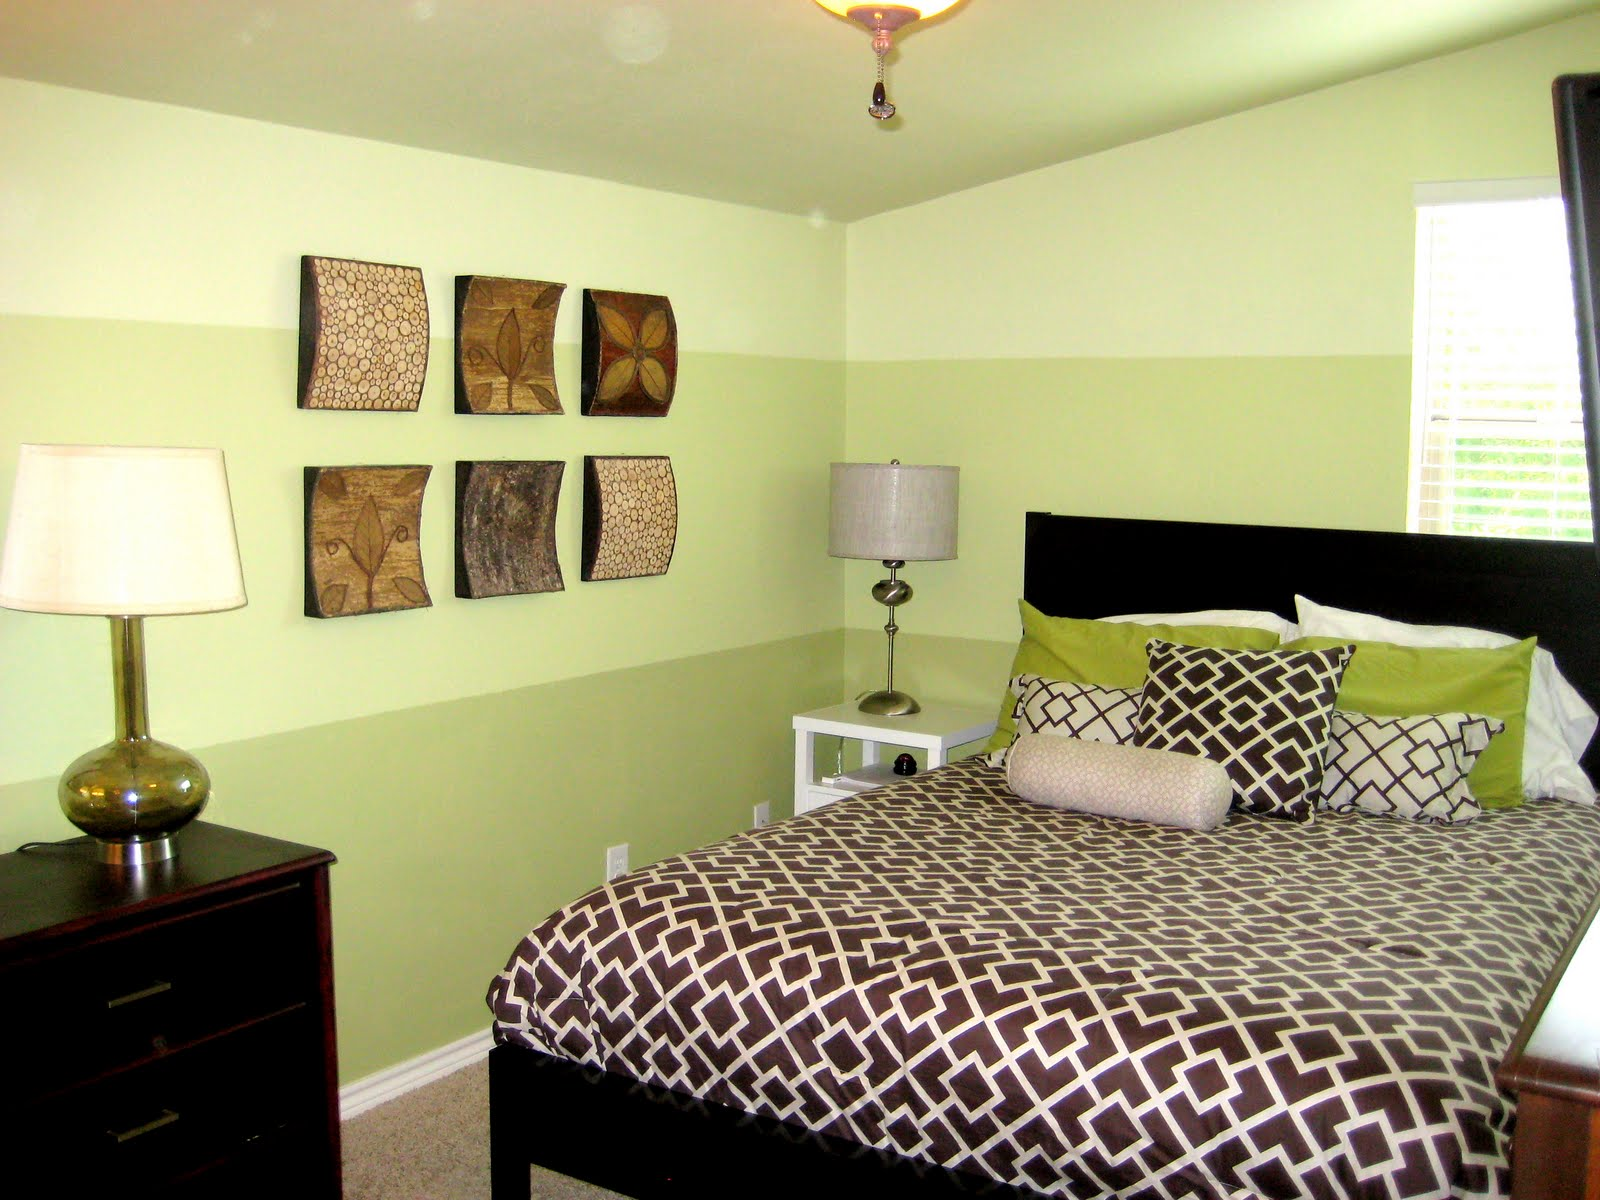 Outstanding 3 Color Wall Painting Ideas Component - Wall Art ...